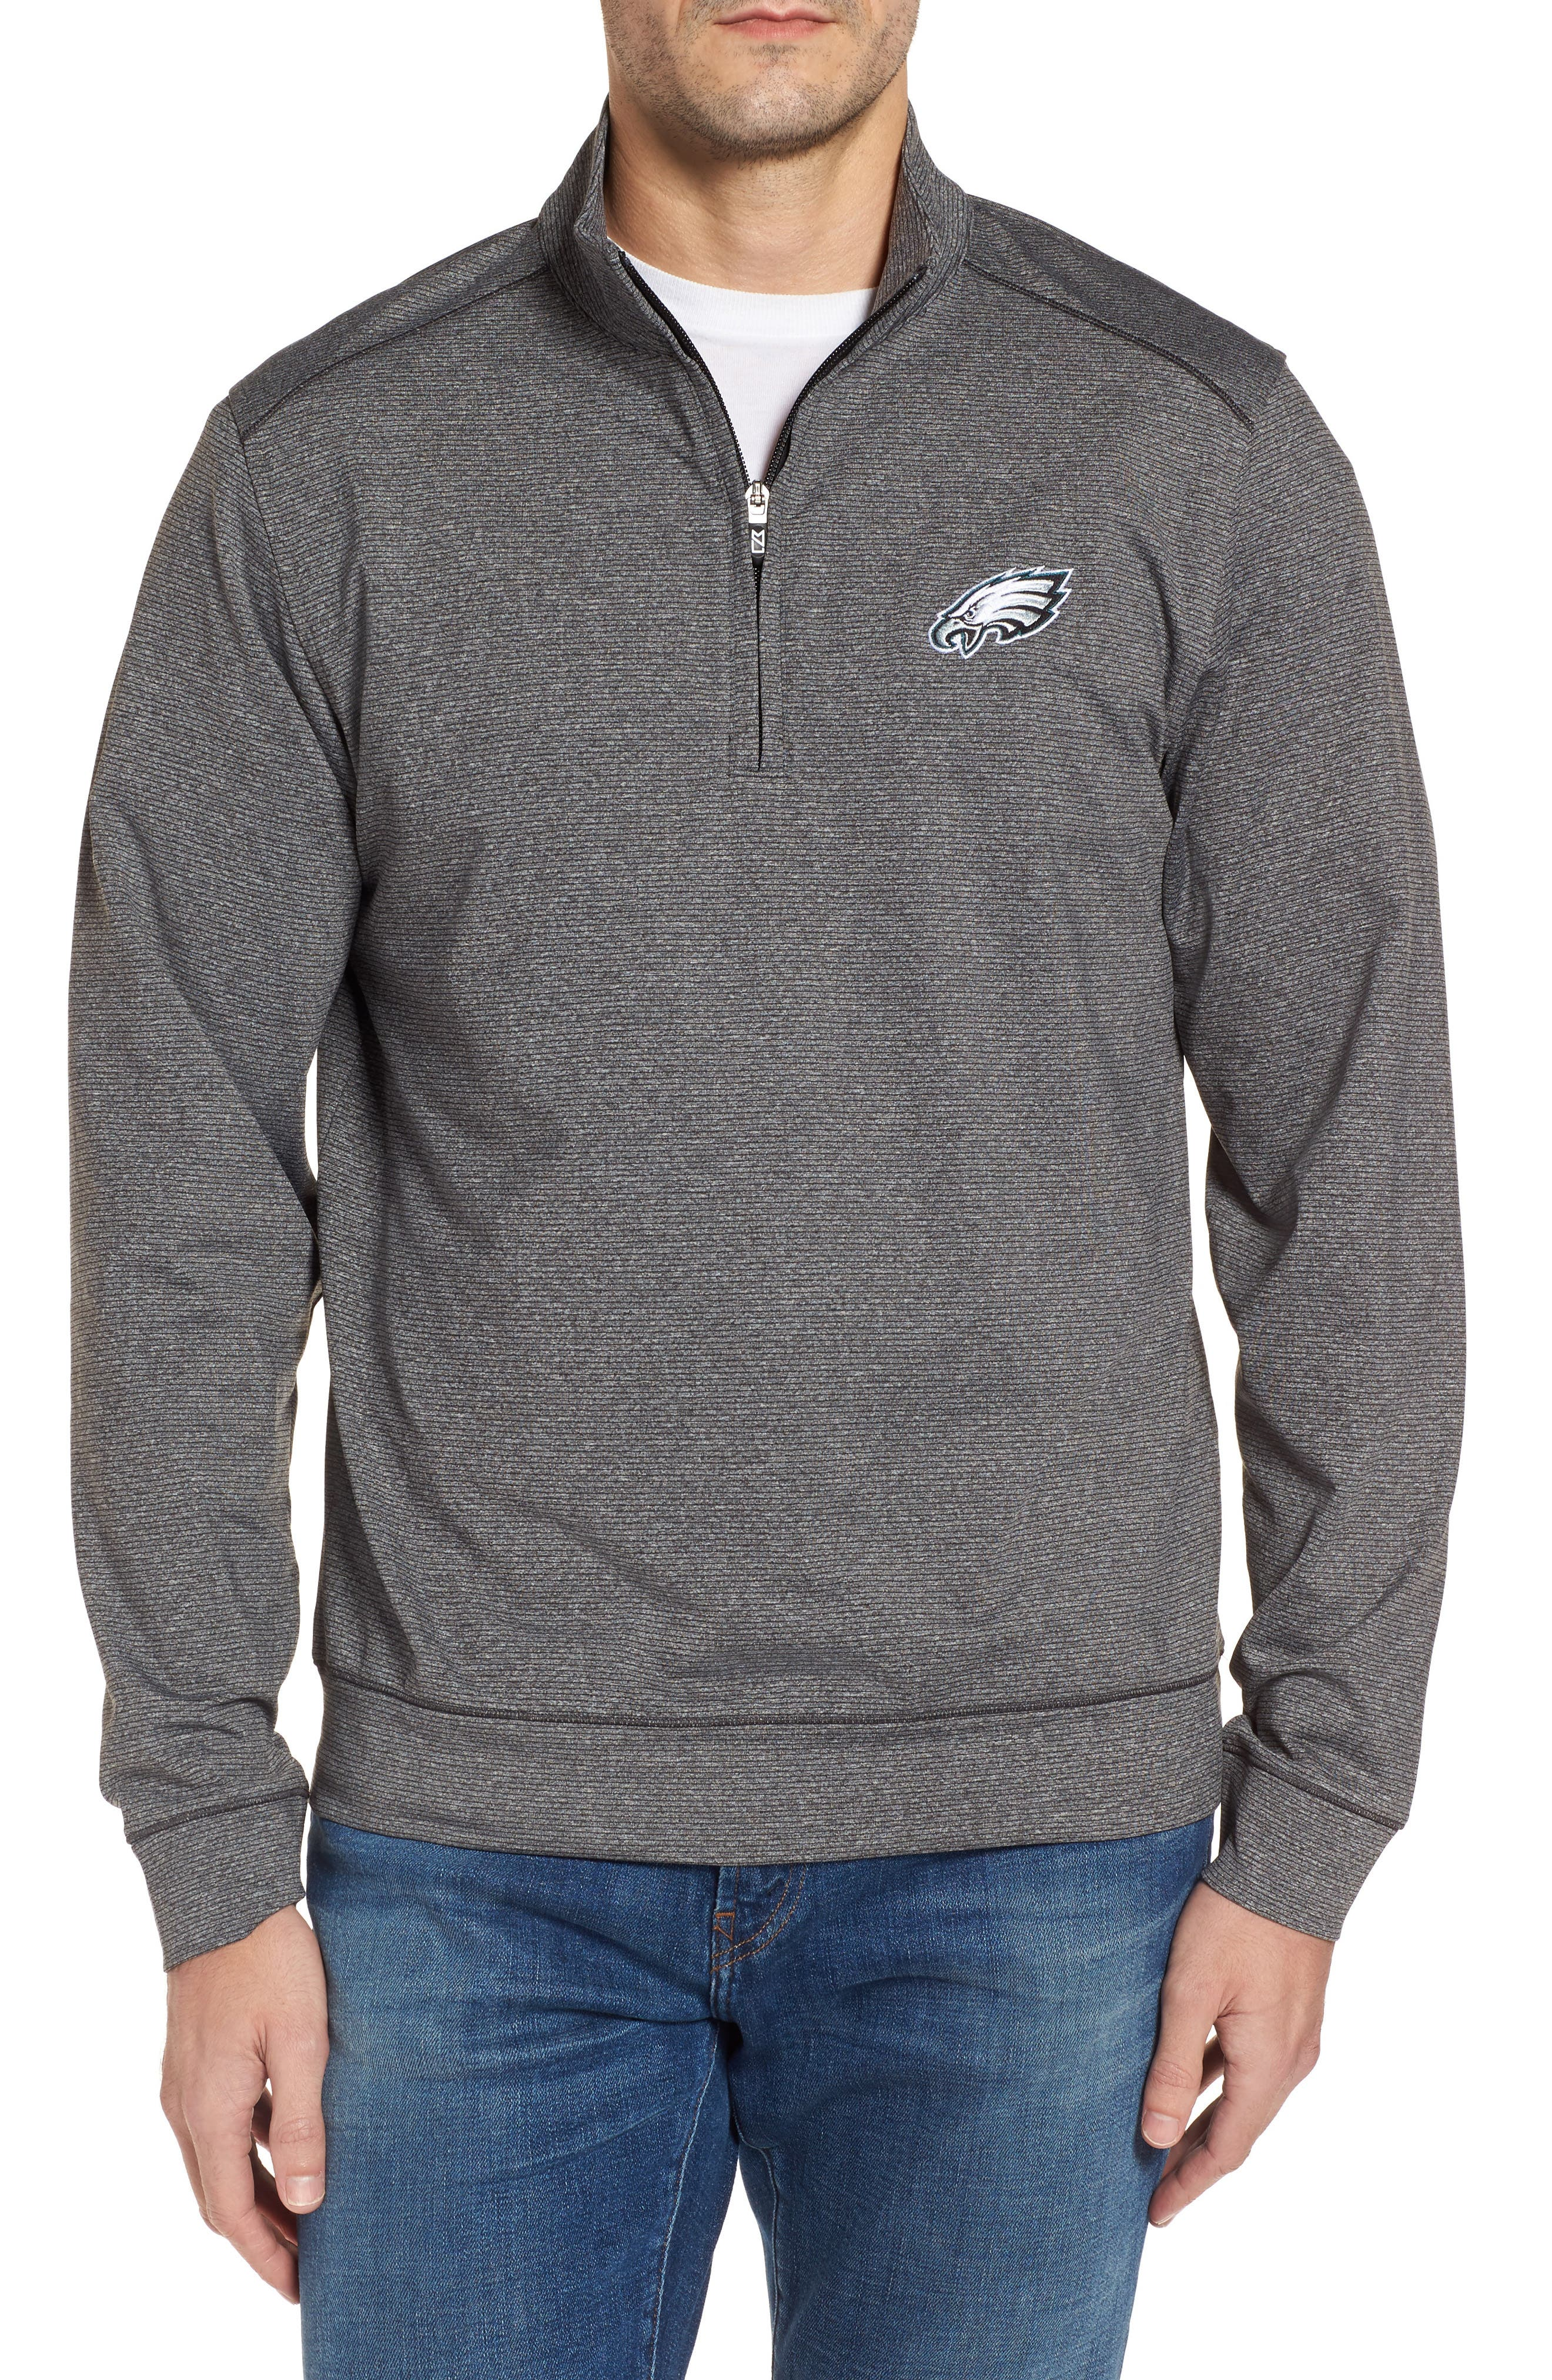 Shoreline - Philadelphia Eagles Half Zip Pullover,                         Main,                         color, Charcoal Heather